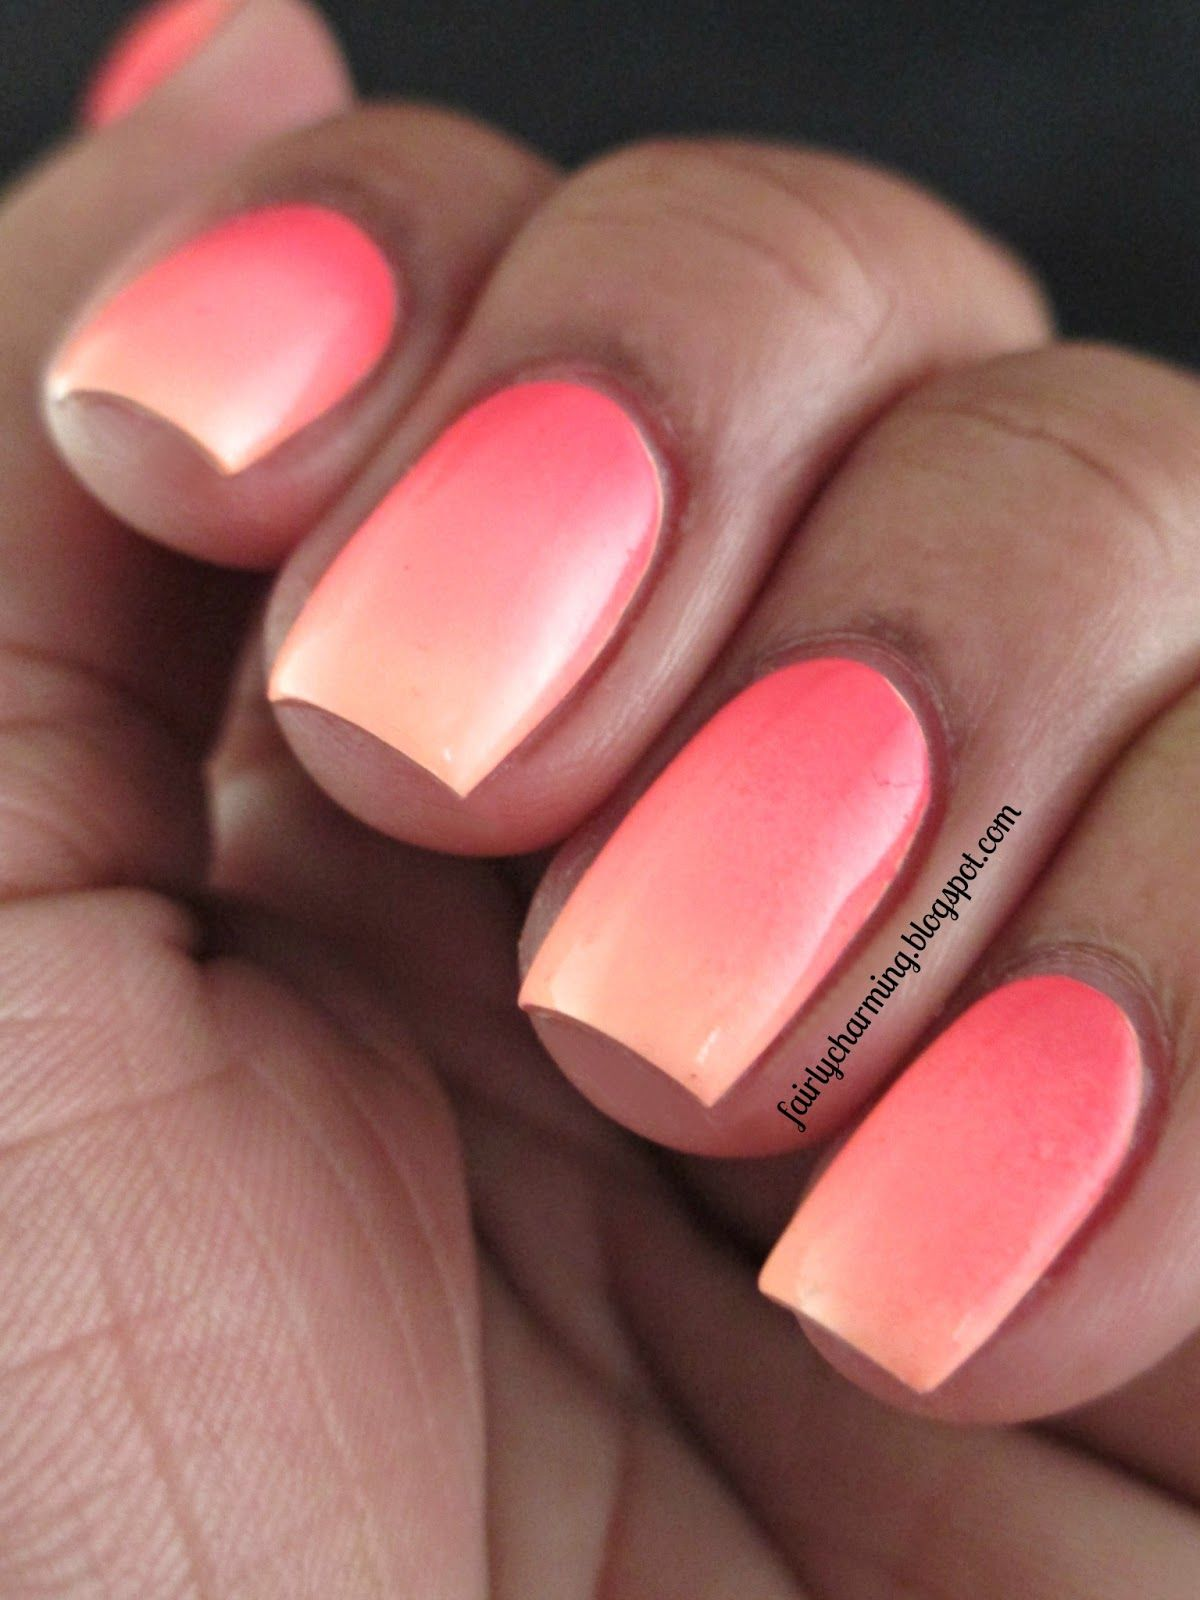 neon coral nail polish gel - Sök på Google | Nails | Pinterest ...